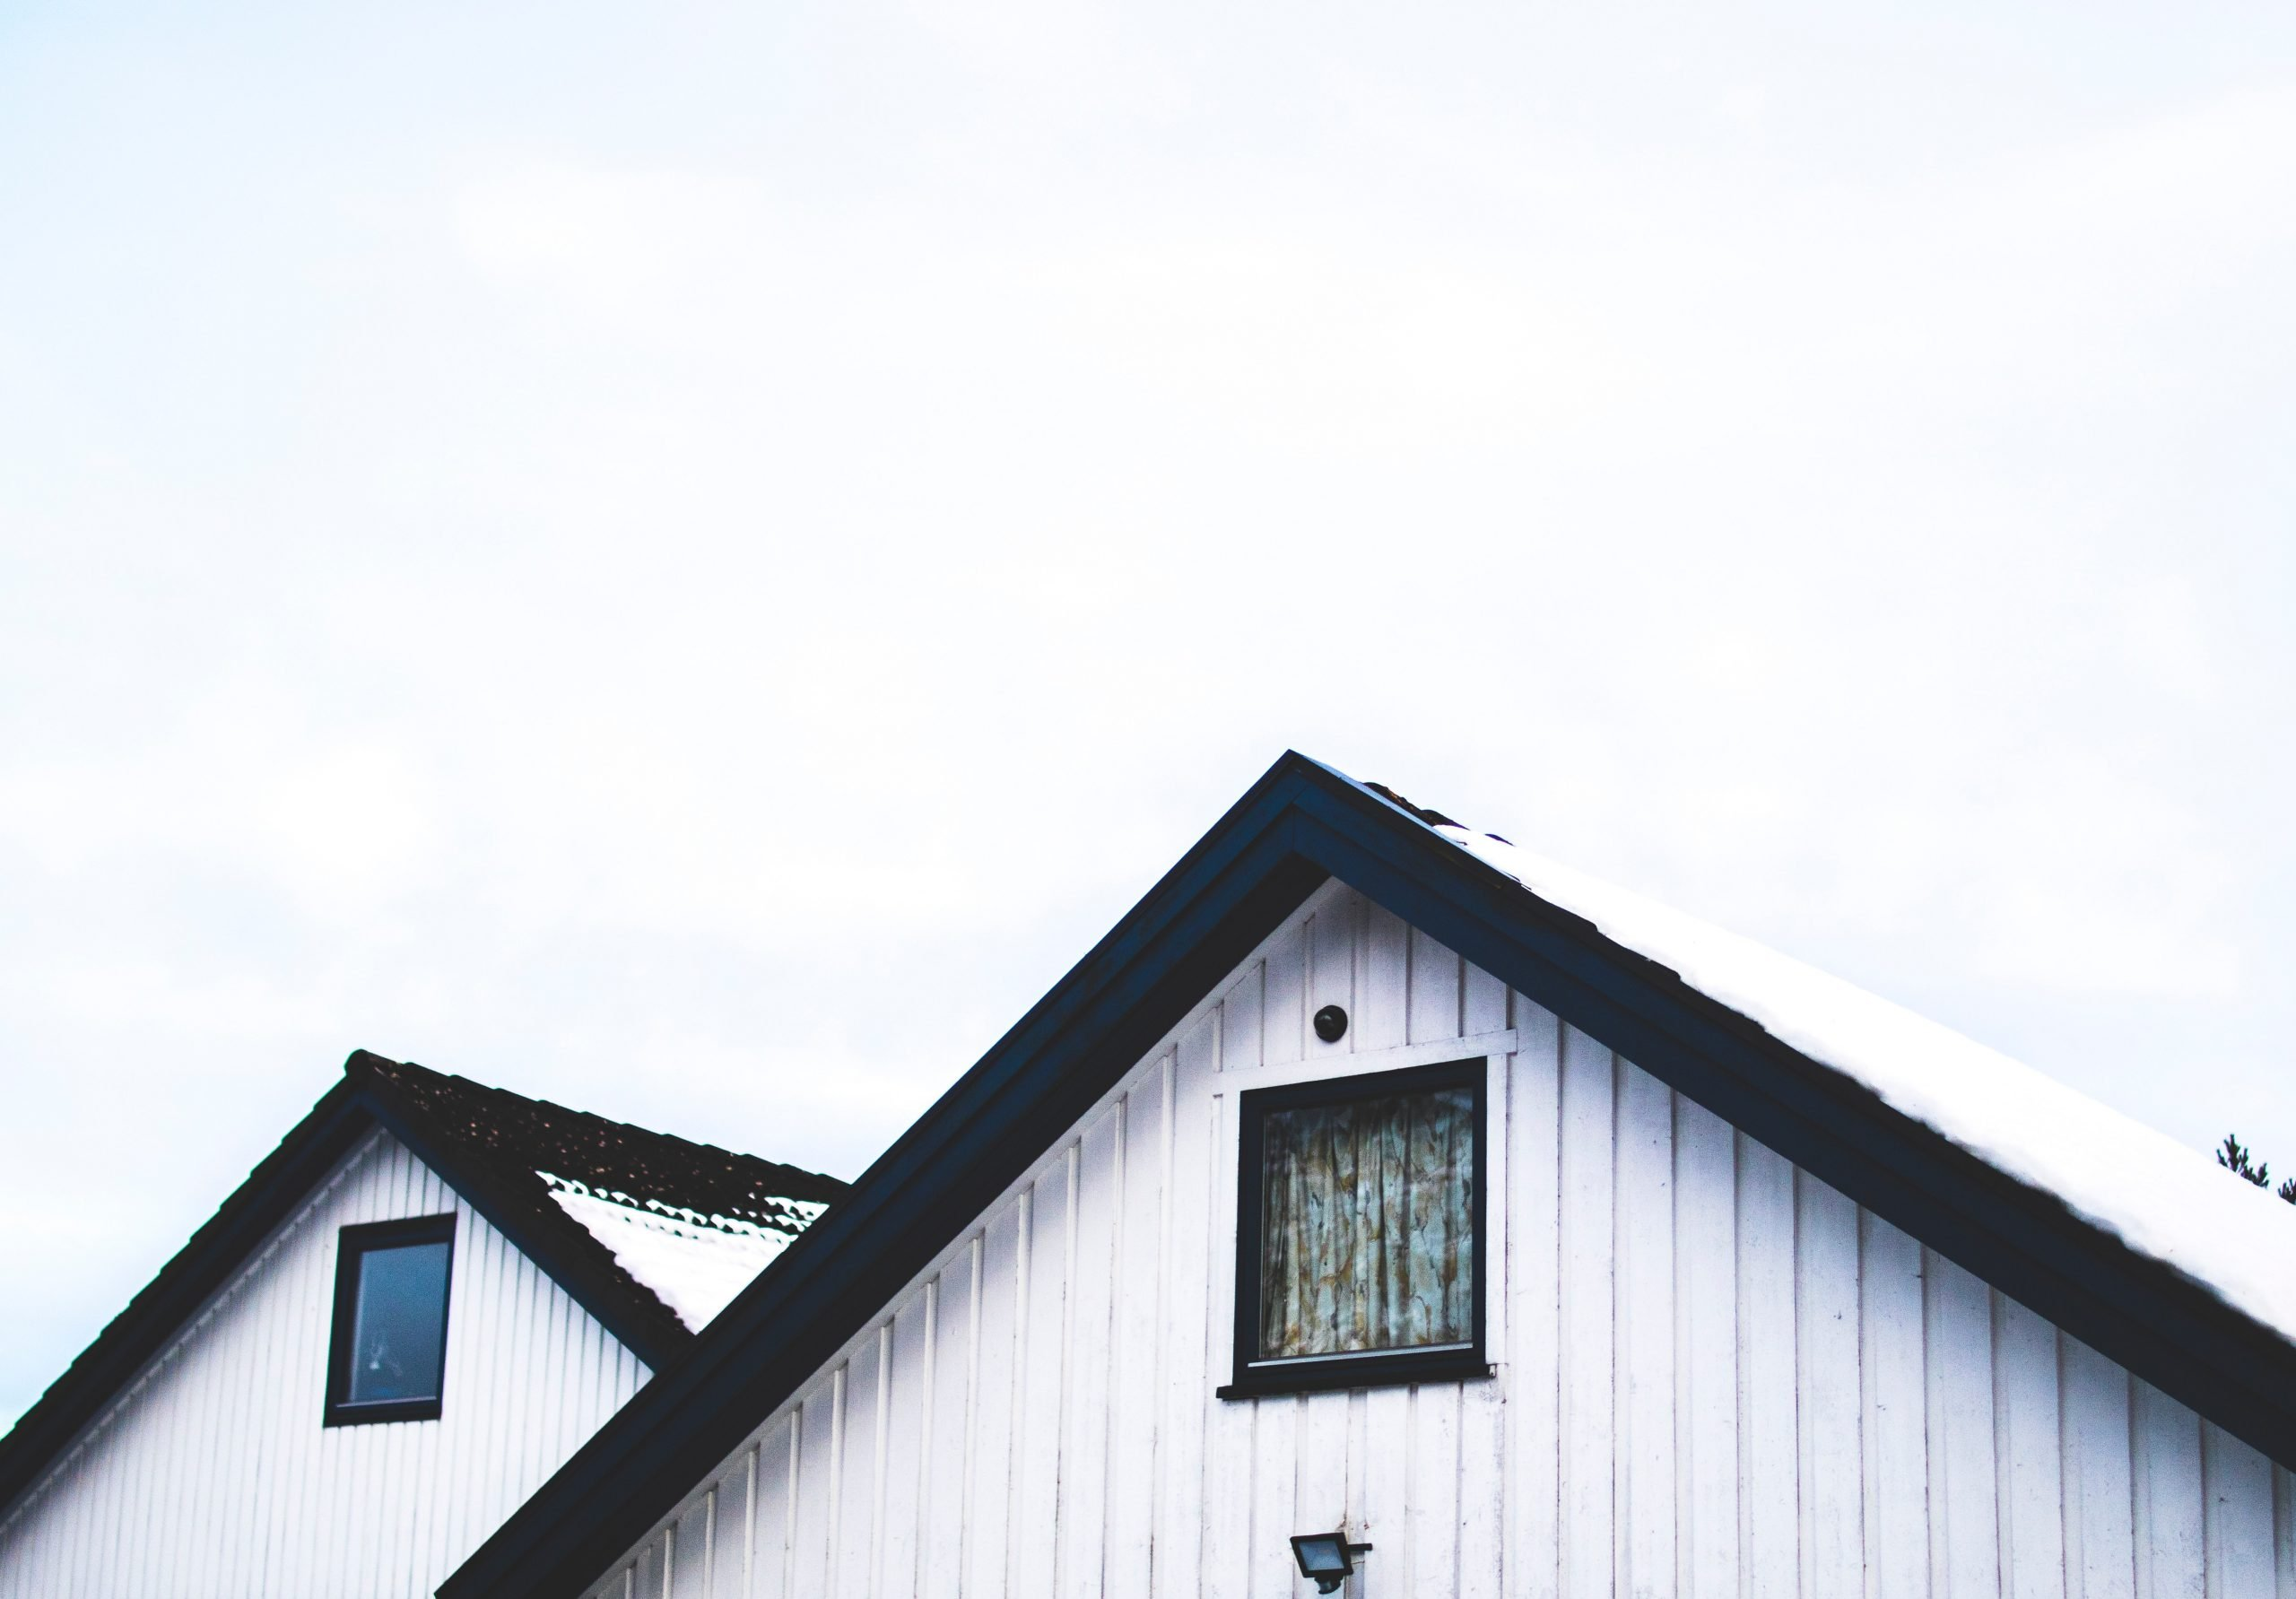 Check Your Siding for Dry Rot or Missing Paint